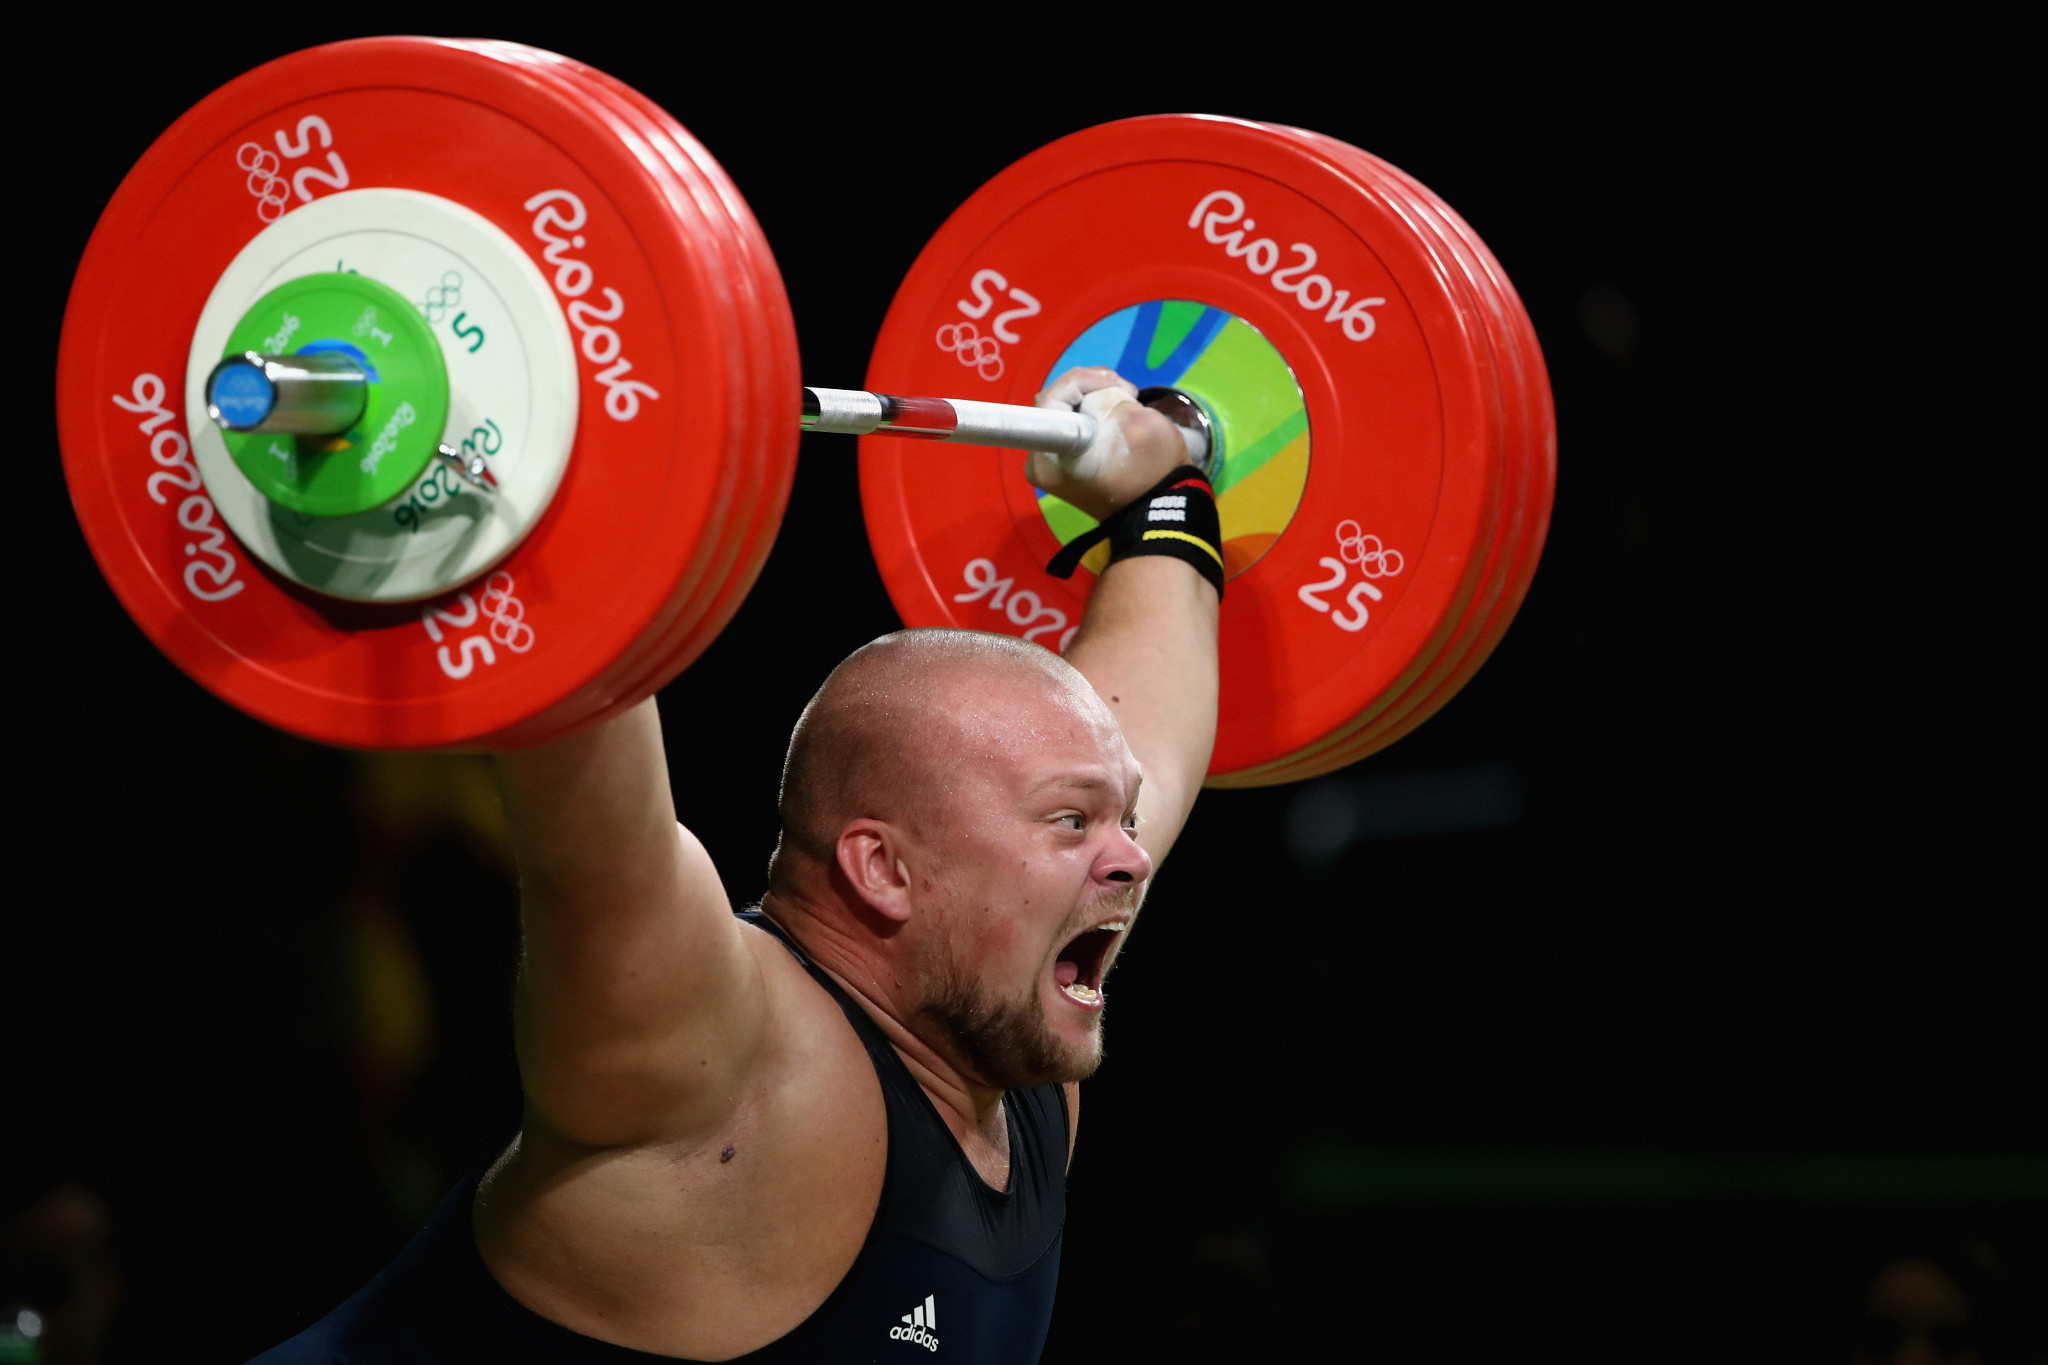 Weightlifting to appoint Independent Testing Authority in bid to combat doping and save place in Olympics